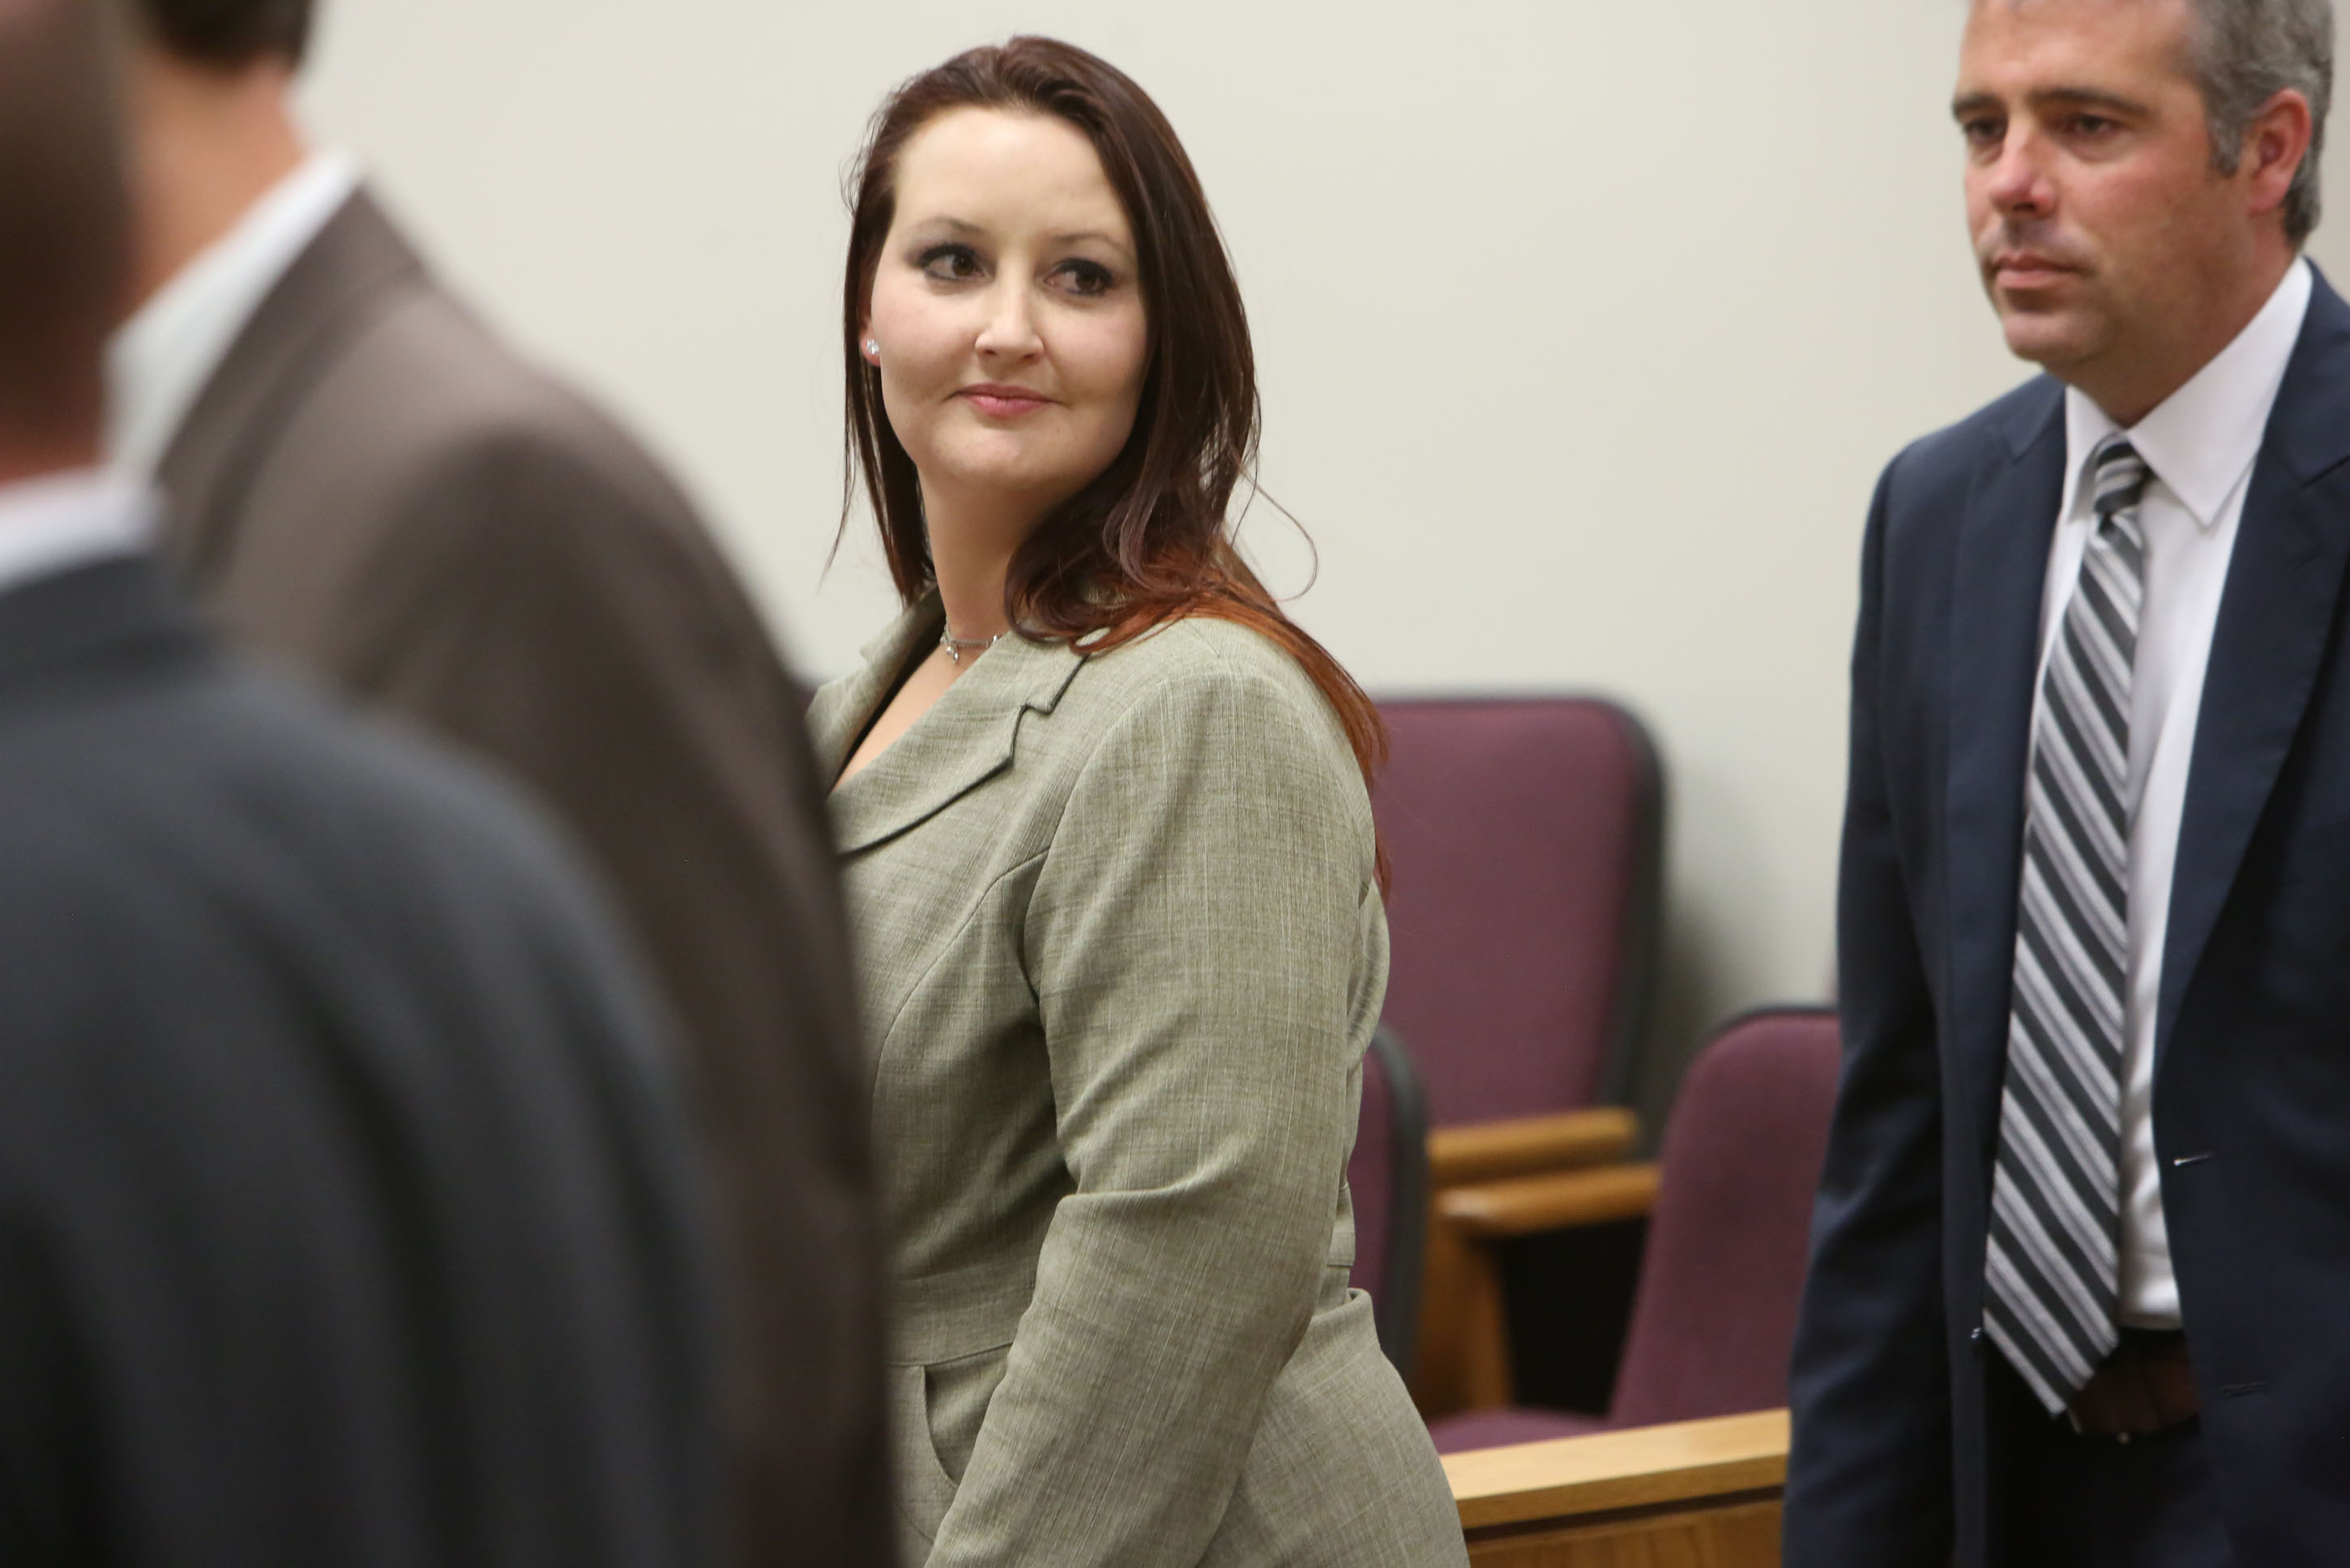 Ksl Cars Mobile >> Mistress testifies in trial, says affair with MacNeill was 'casual fling' | KSL.com